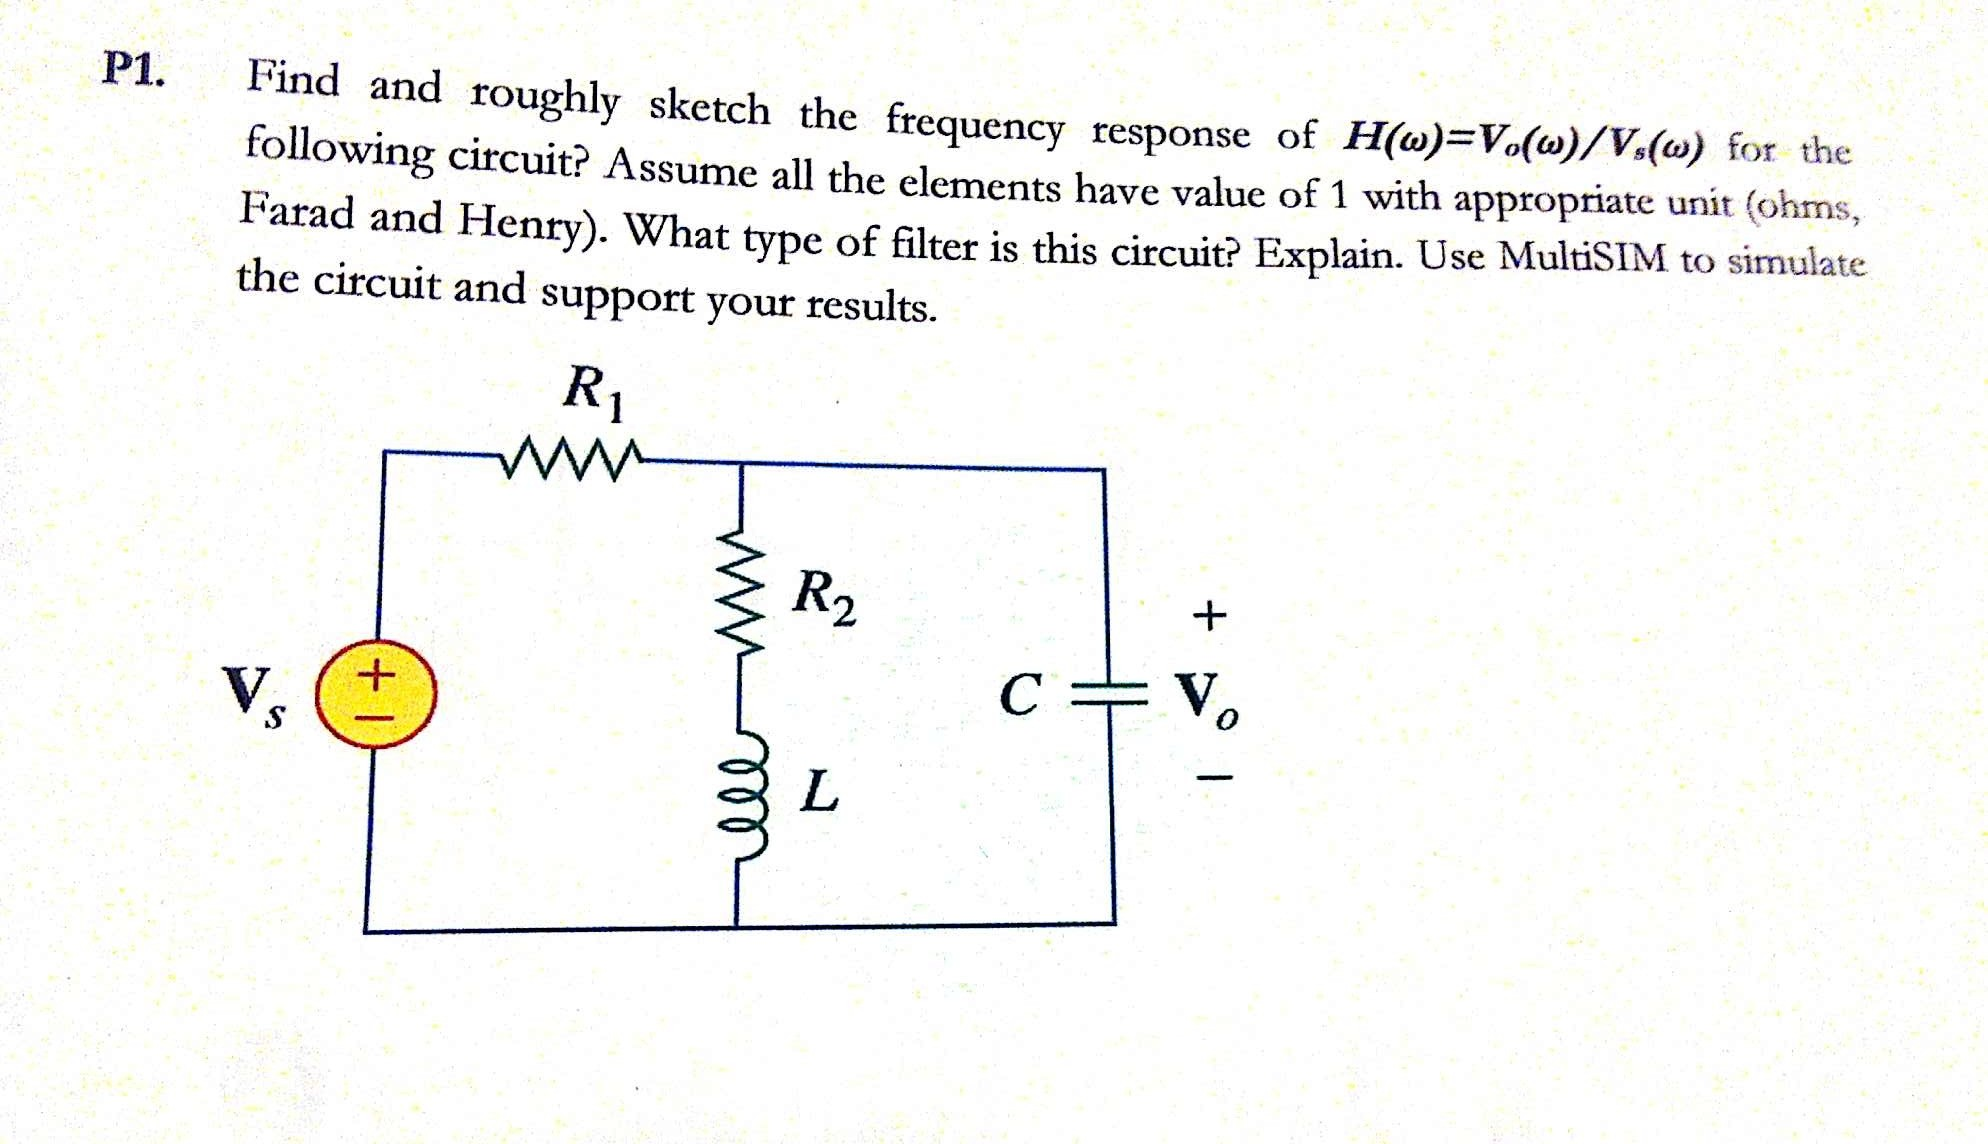 Find and roughly sketch the frequency response of